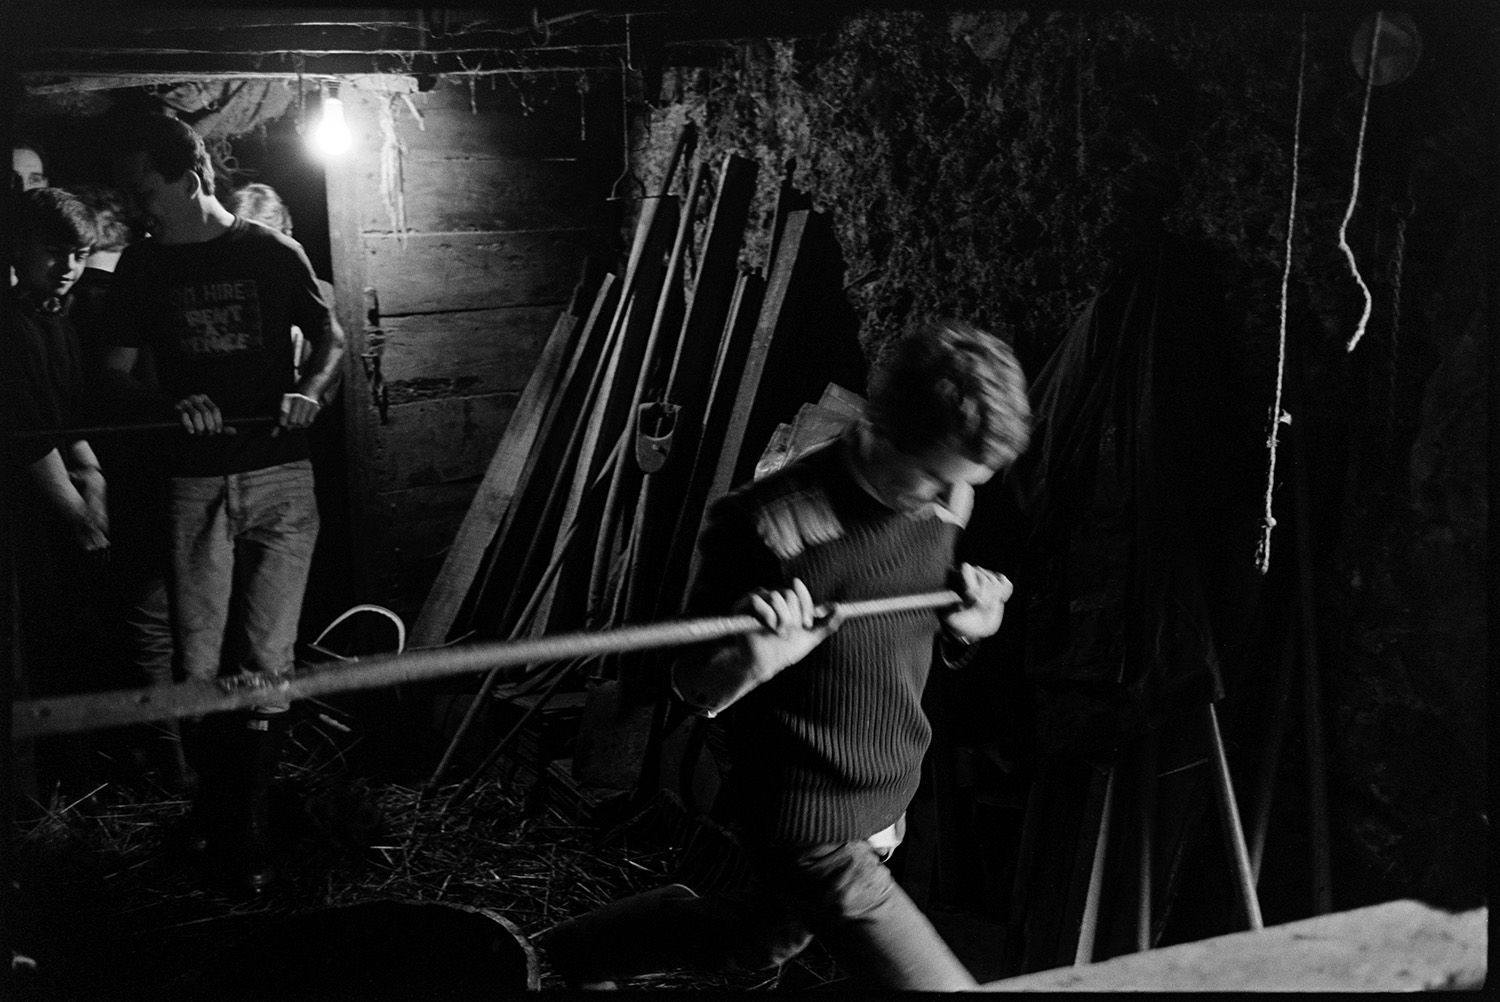 Men pressing cider and trying it out.<br /> [Men from the Down family pressing cider in a barn at Spittle, Chulmleigh. One man is pushing a metal bar to turn the cider press, while others watch in the background.]